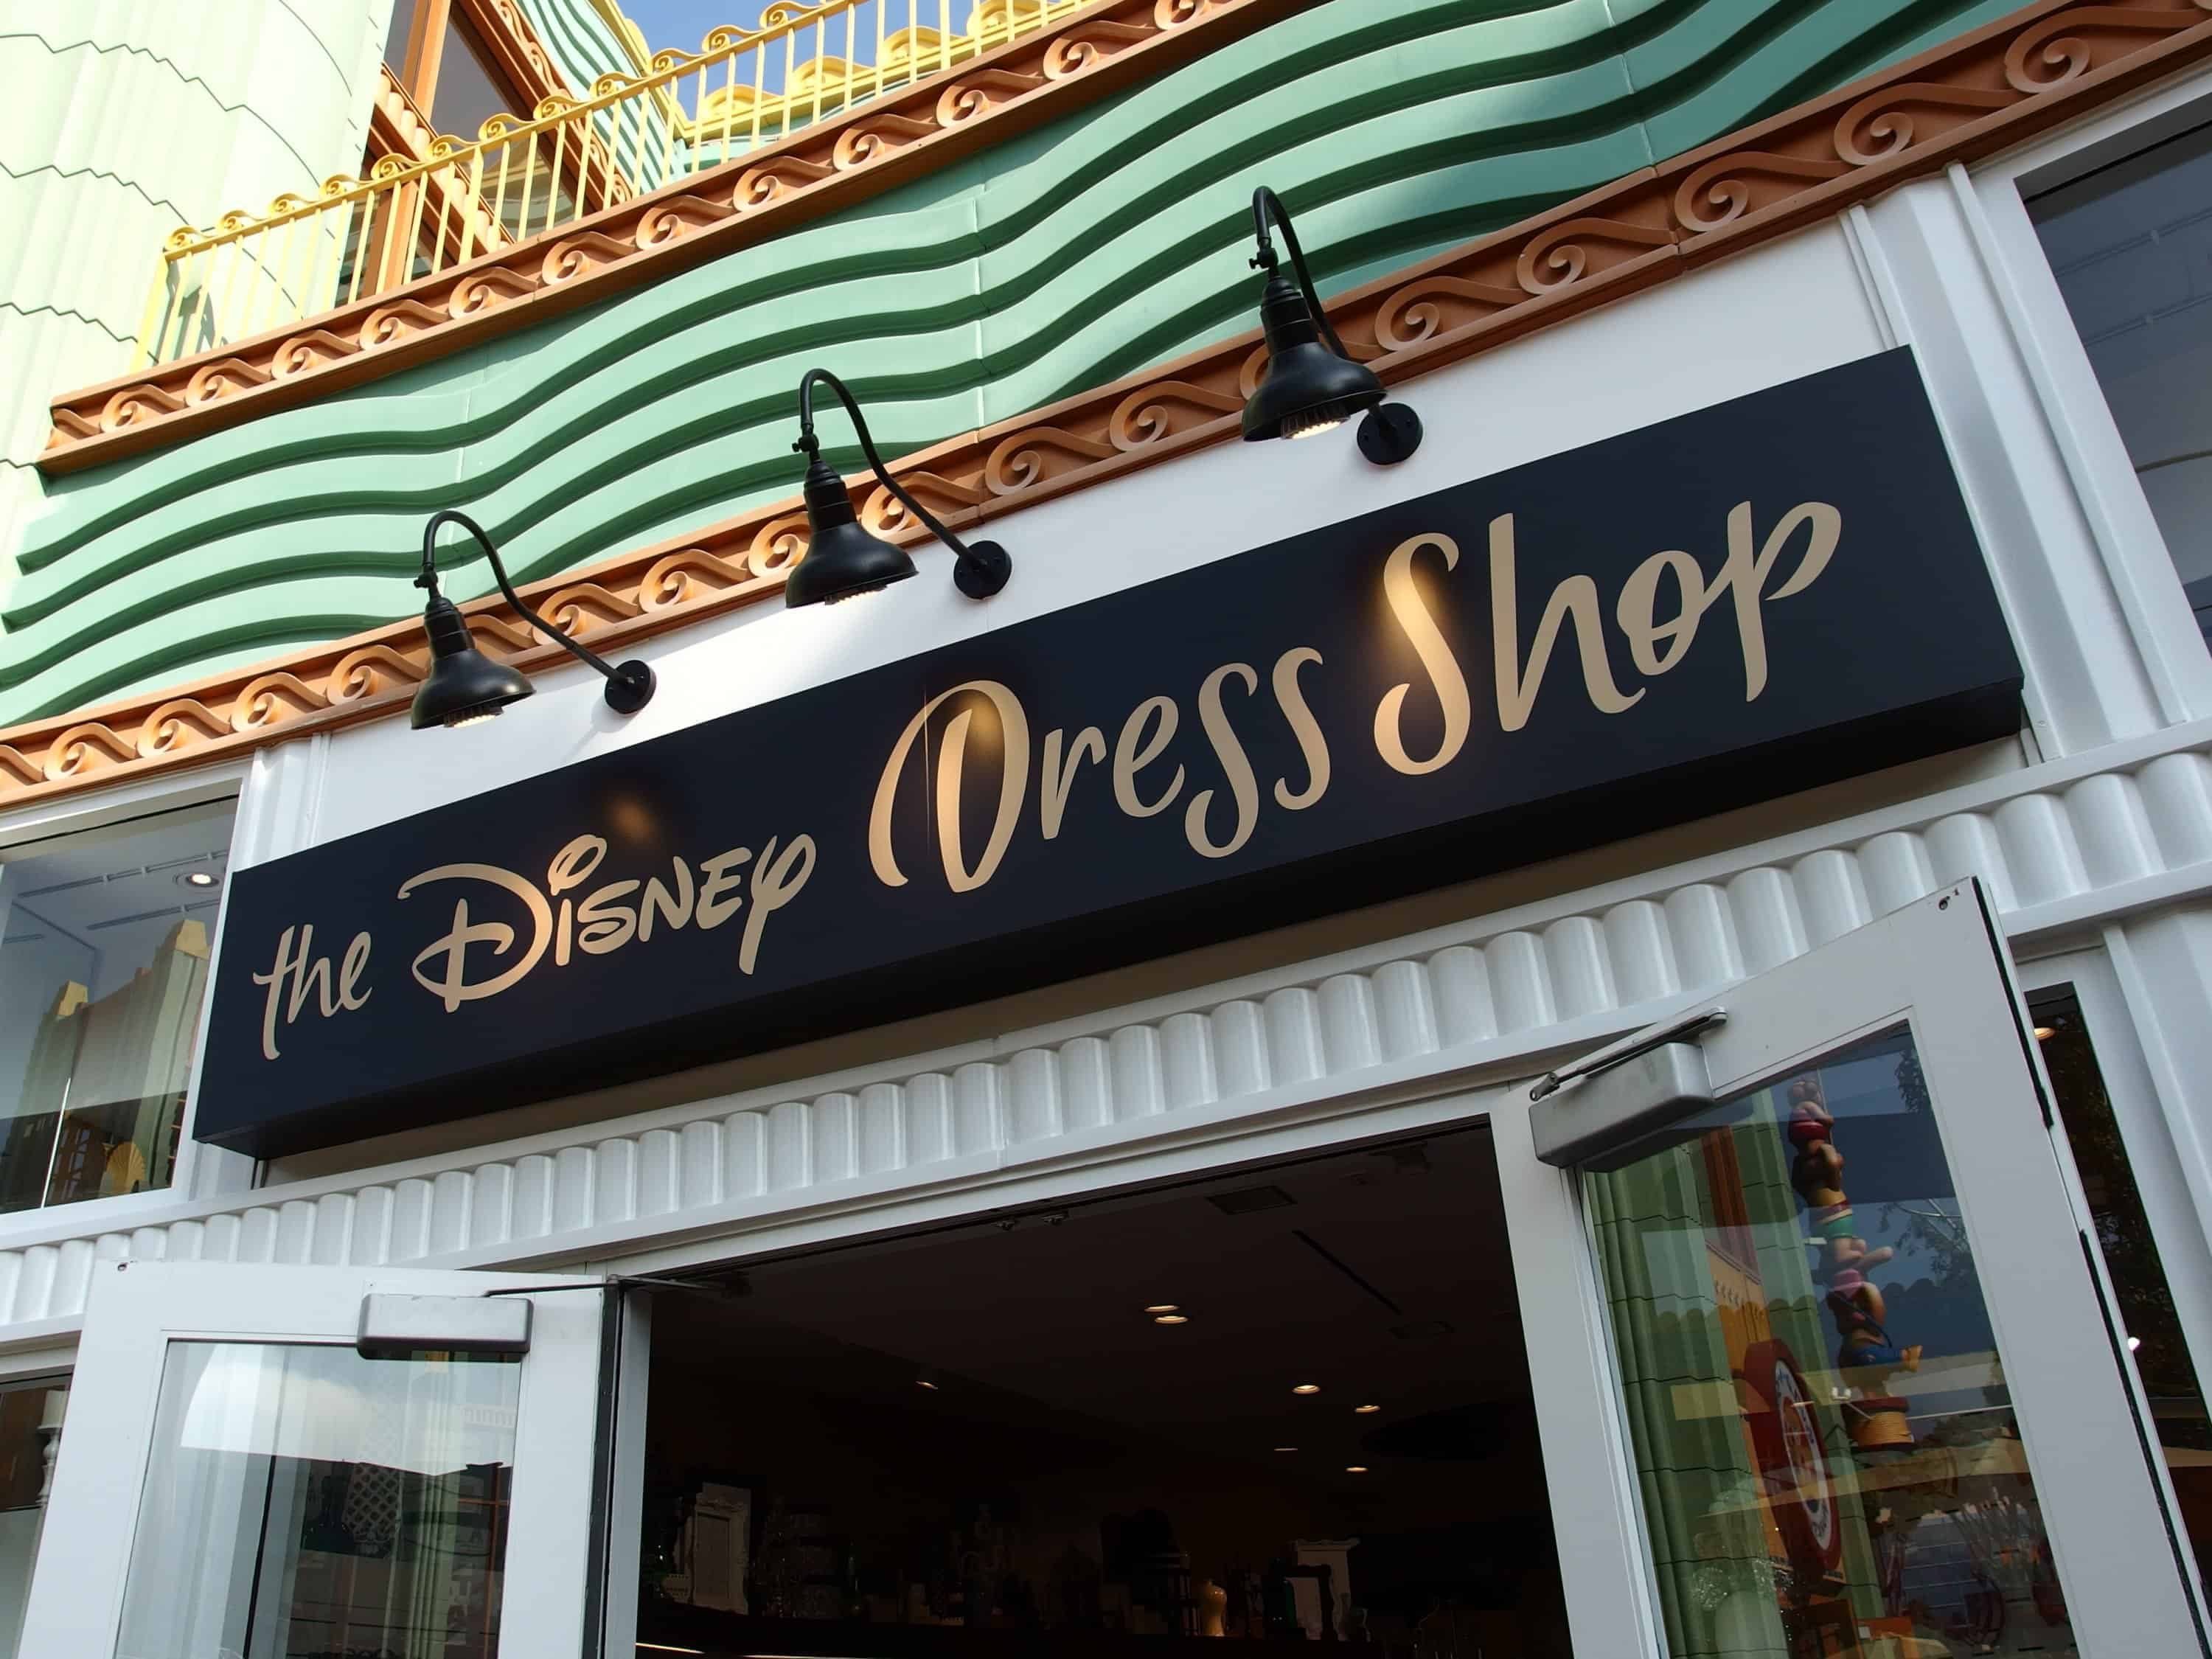 The Disney Dress Shop